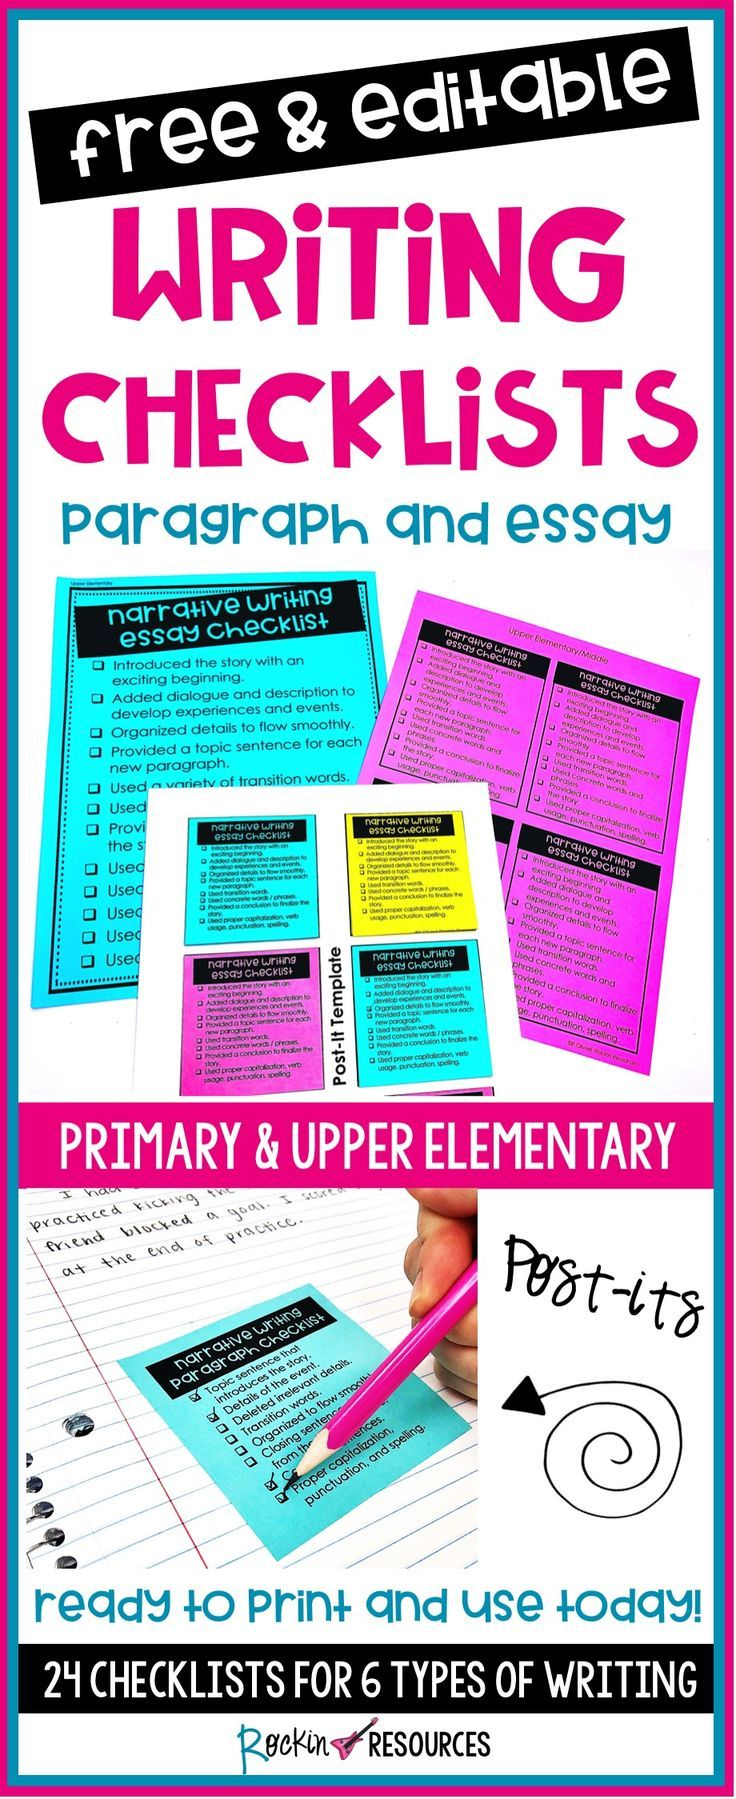 Are your students leaving out key components in their